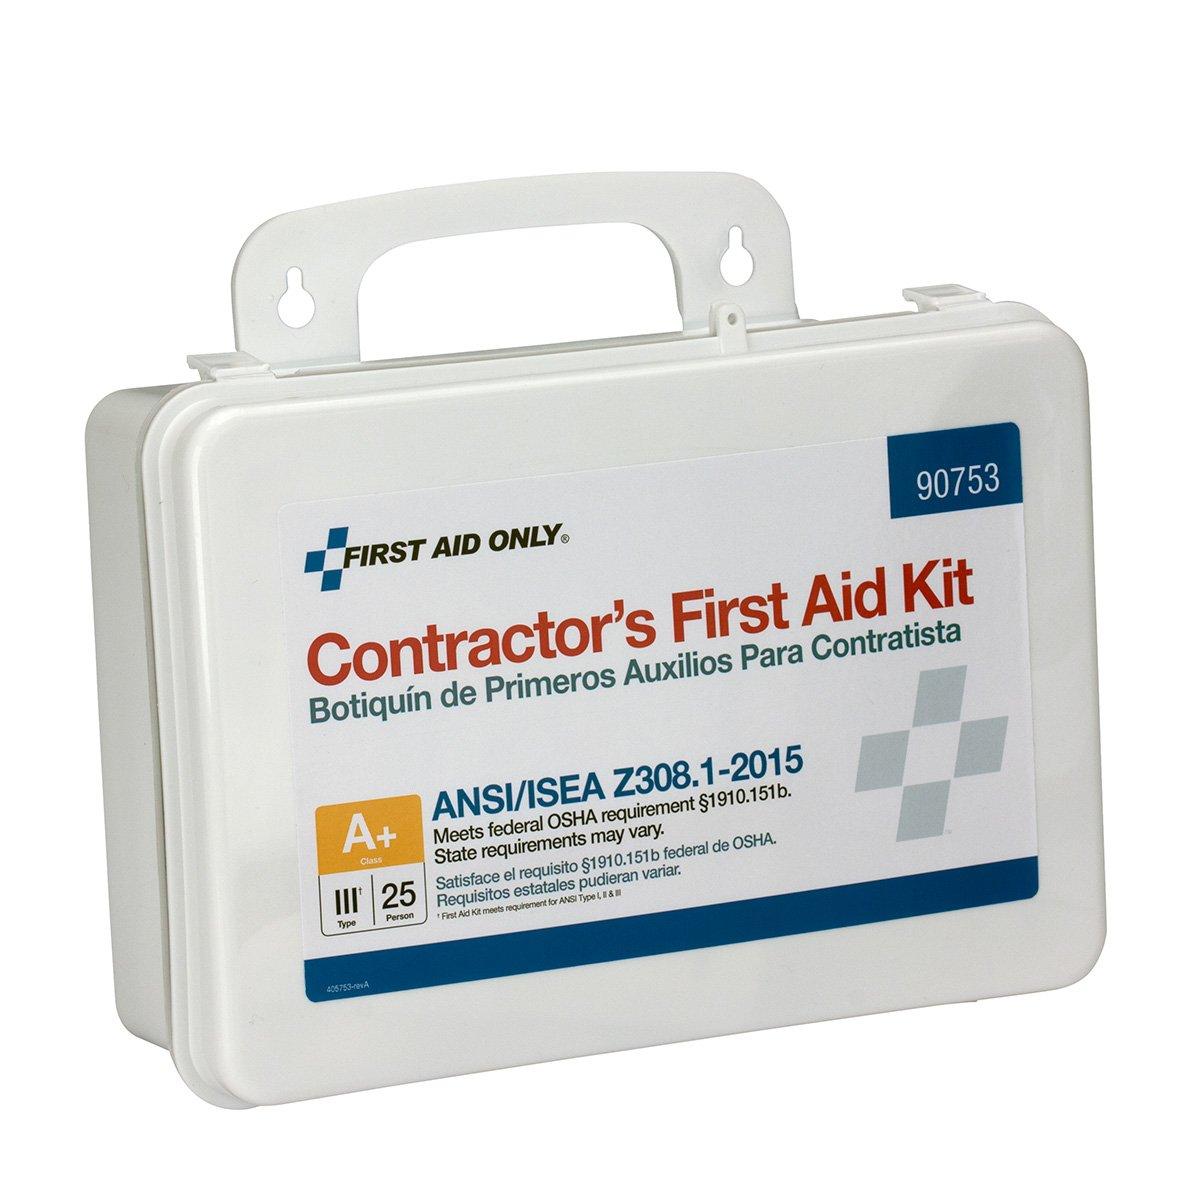 First Aid Only Inc 90753 Contractor Ansi Class A+ First Aid Kit For 25 People, 128 Pieces